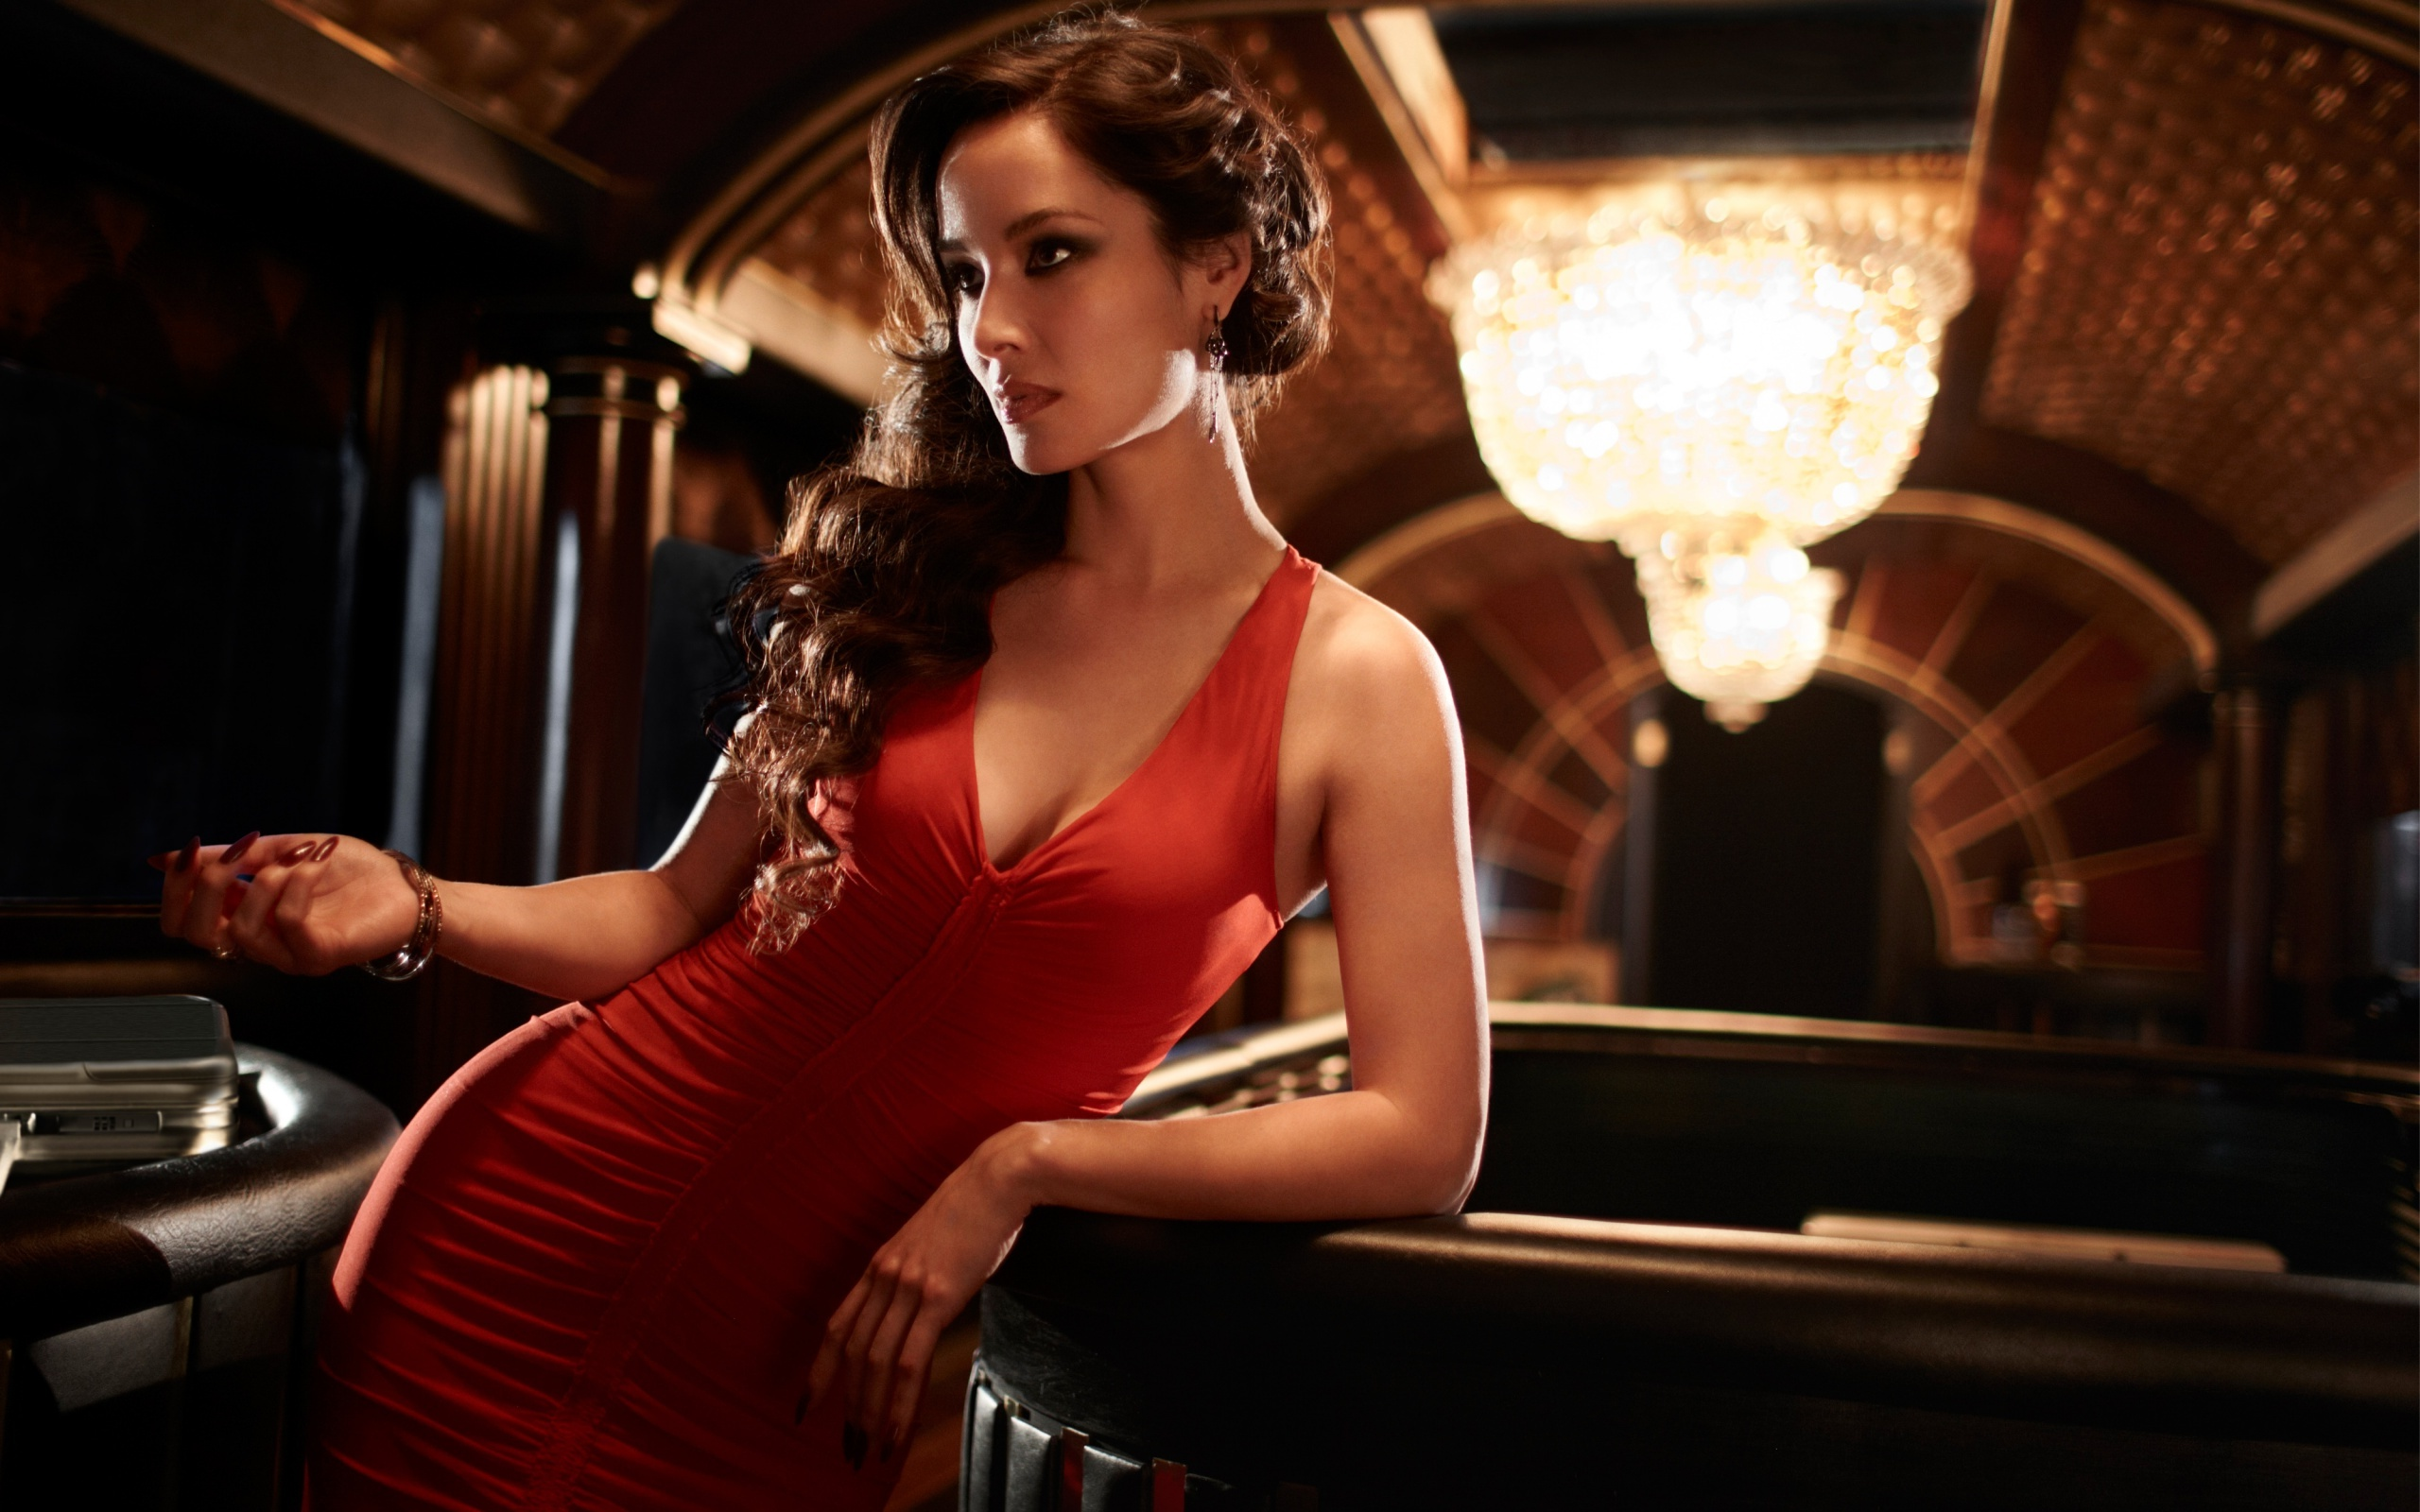 Severine (in a red dress) - Skyfall